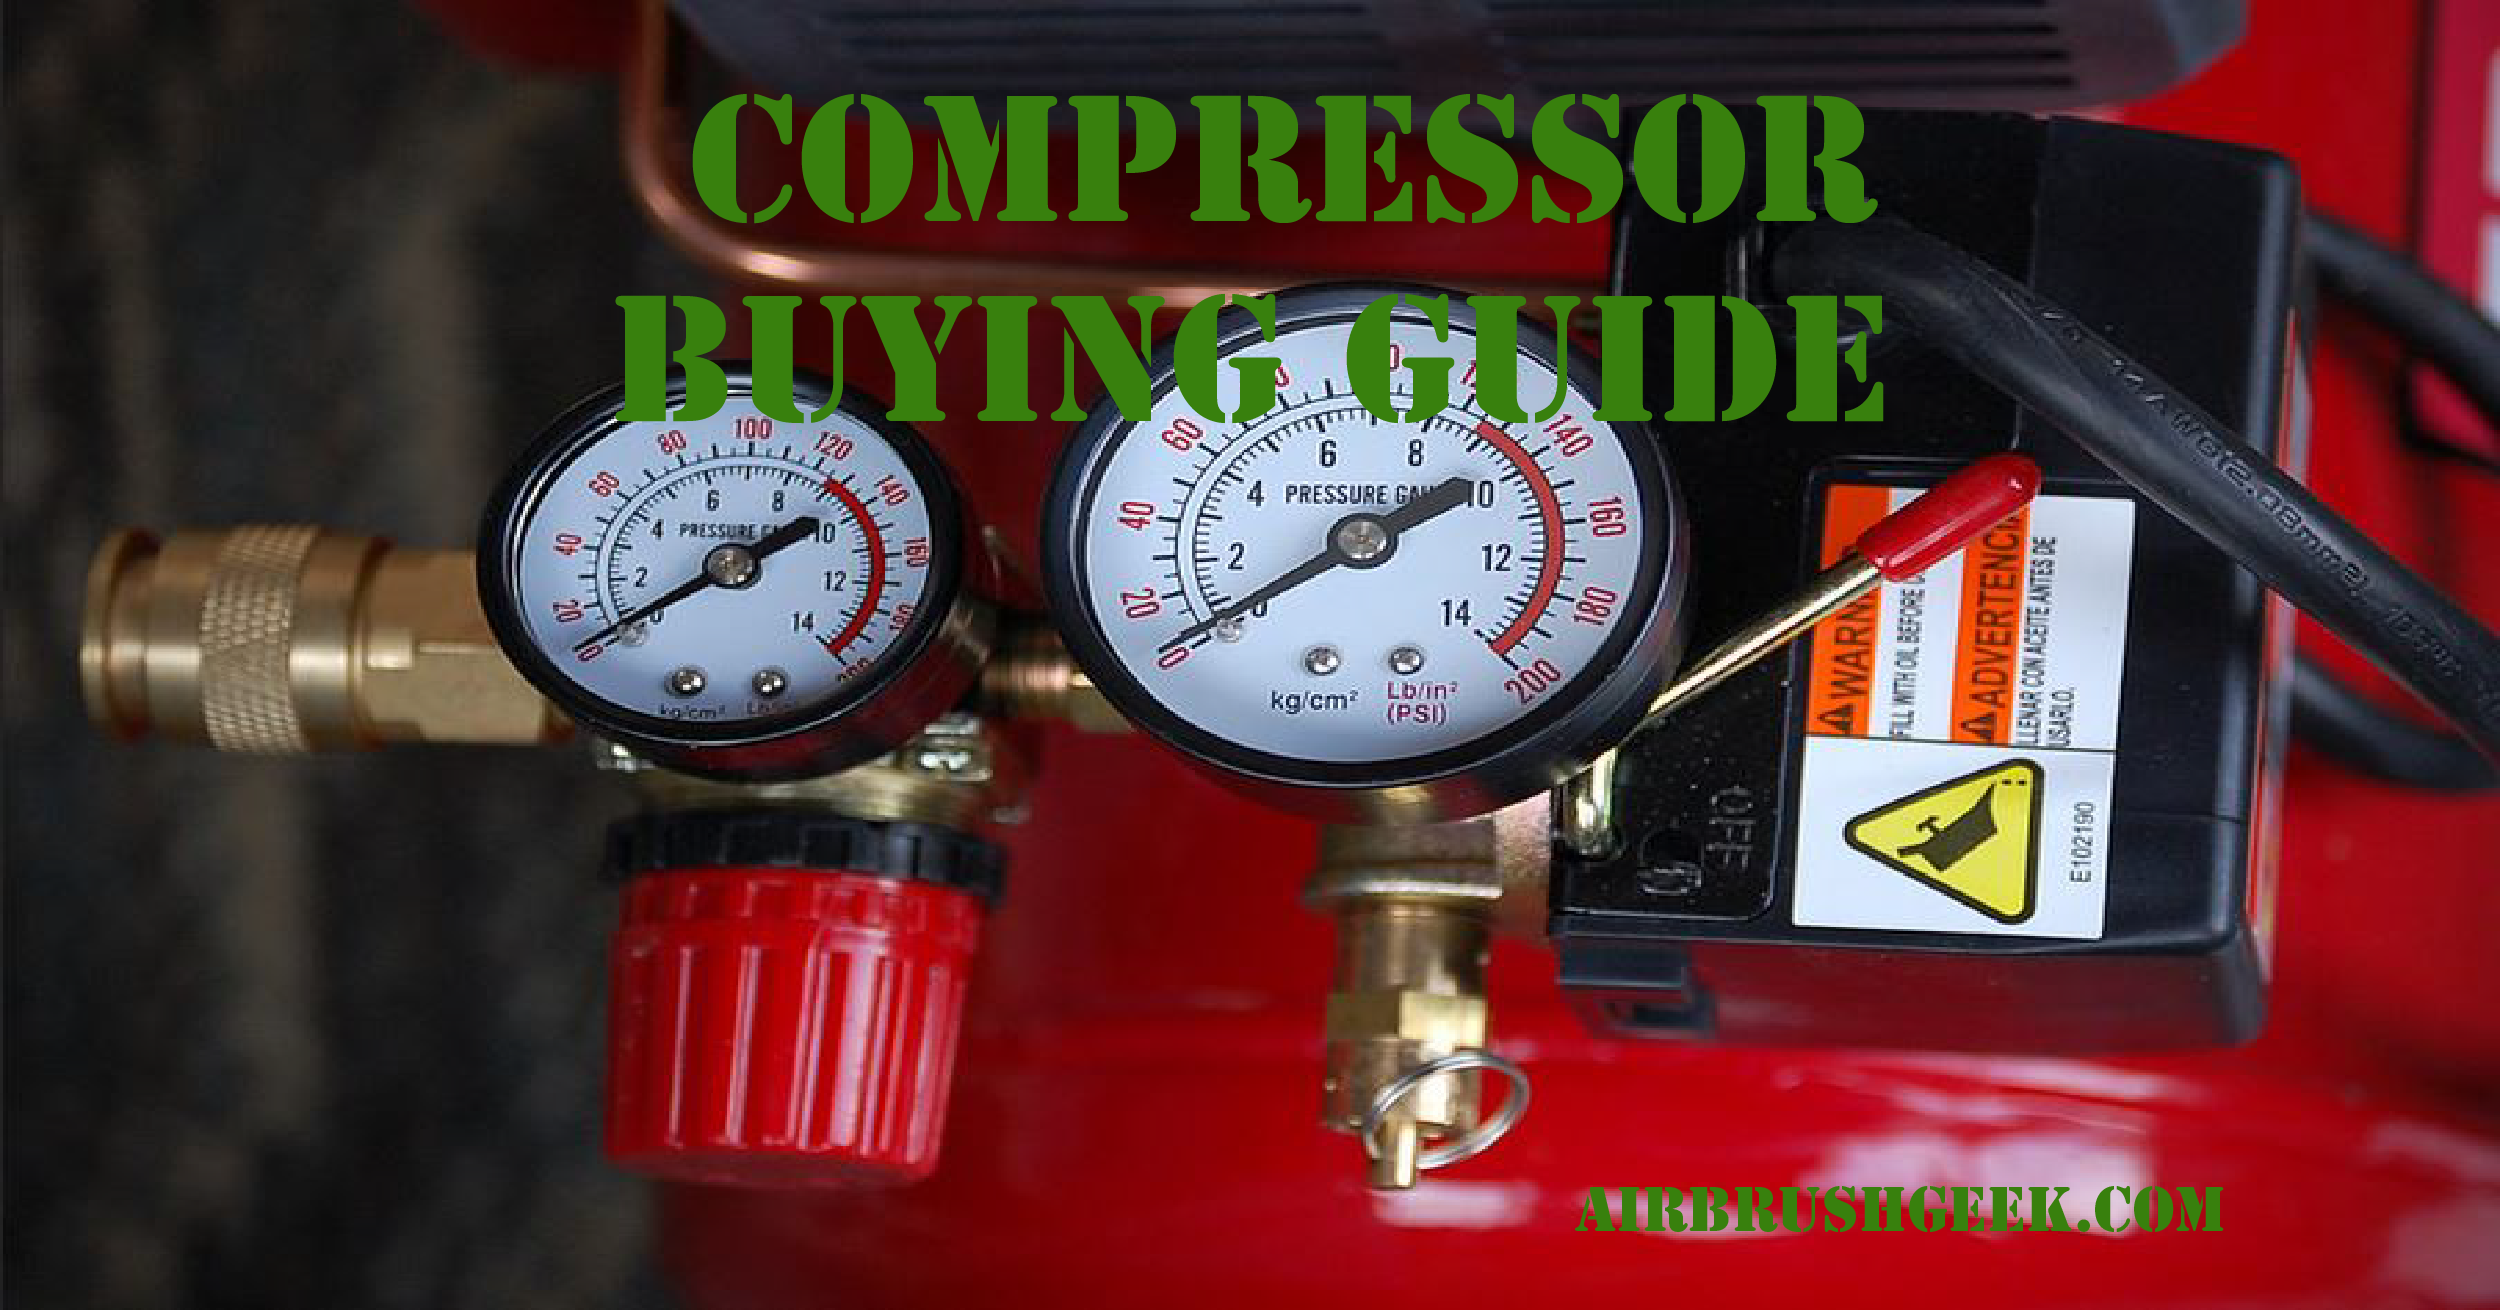 Compressor Buying Guide